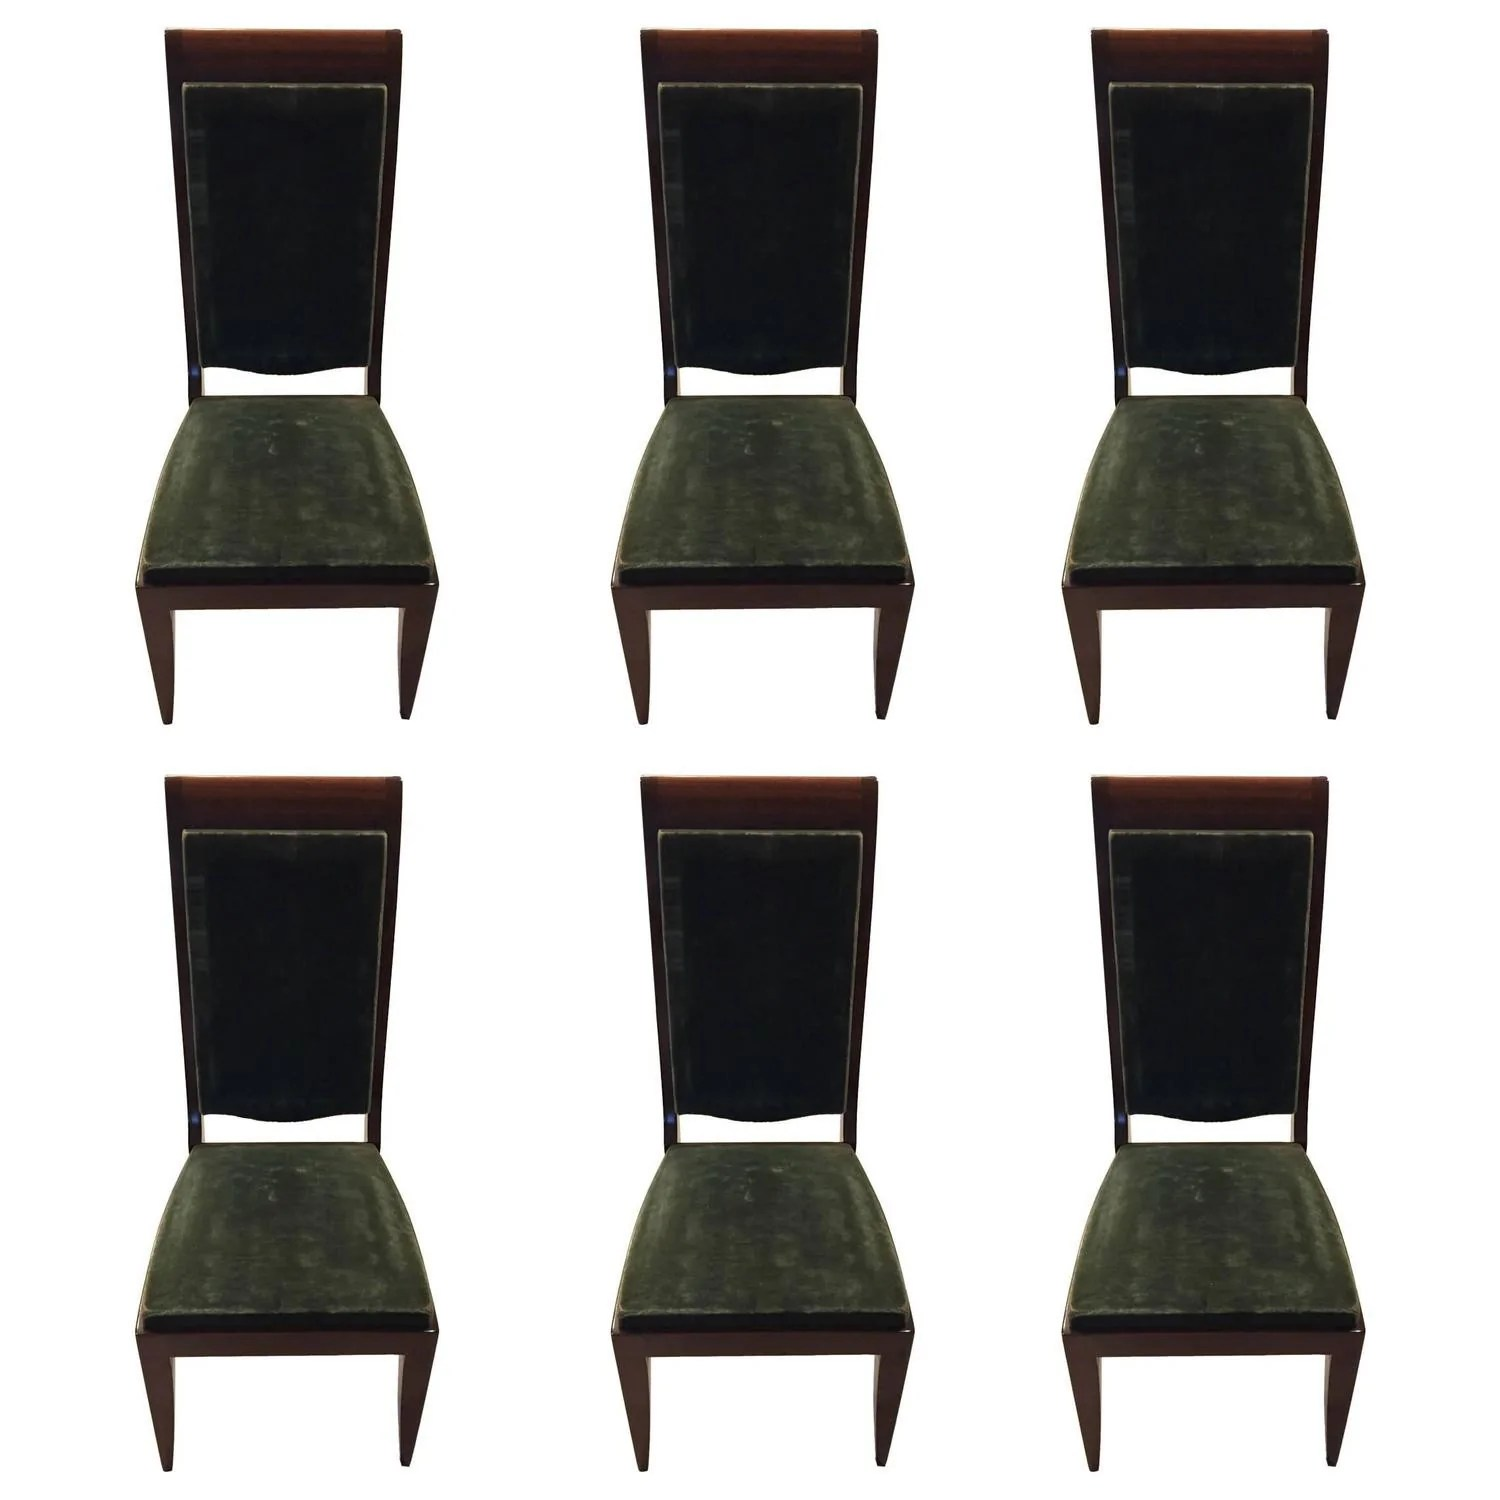 Art Deco Dining Chairs Six Gaston Poisson Attributed French Art Deco Dining Chairs